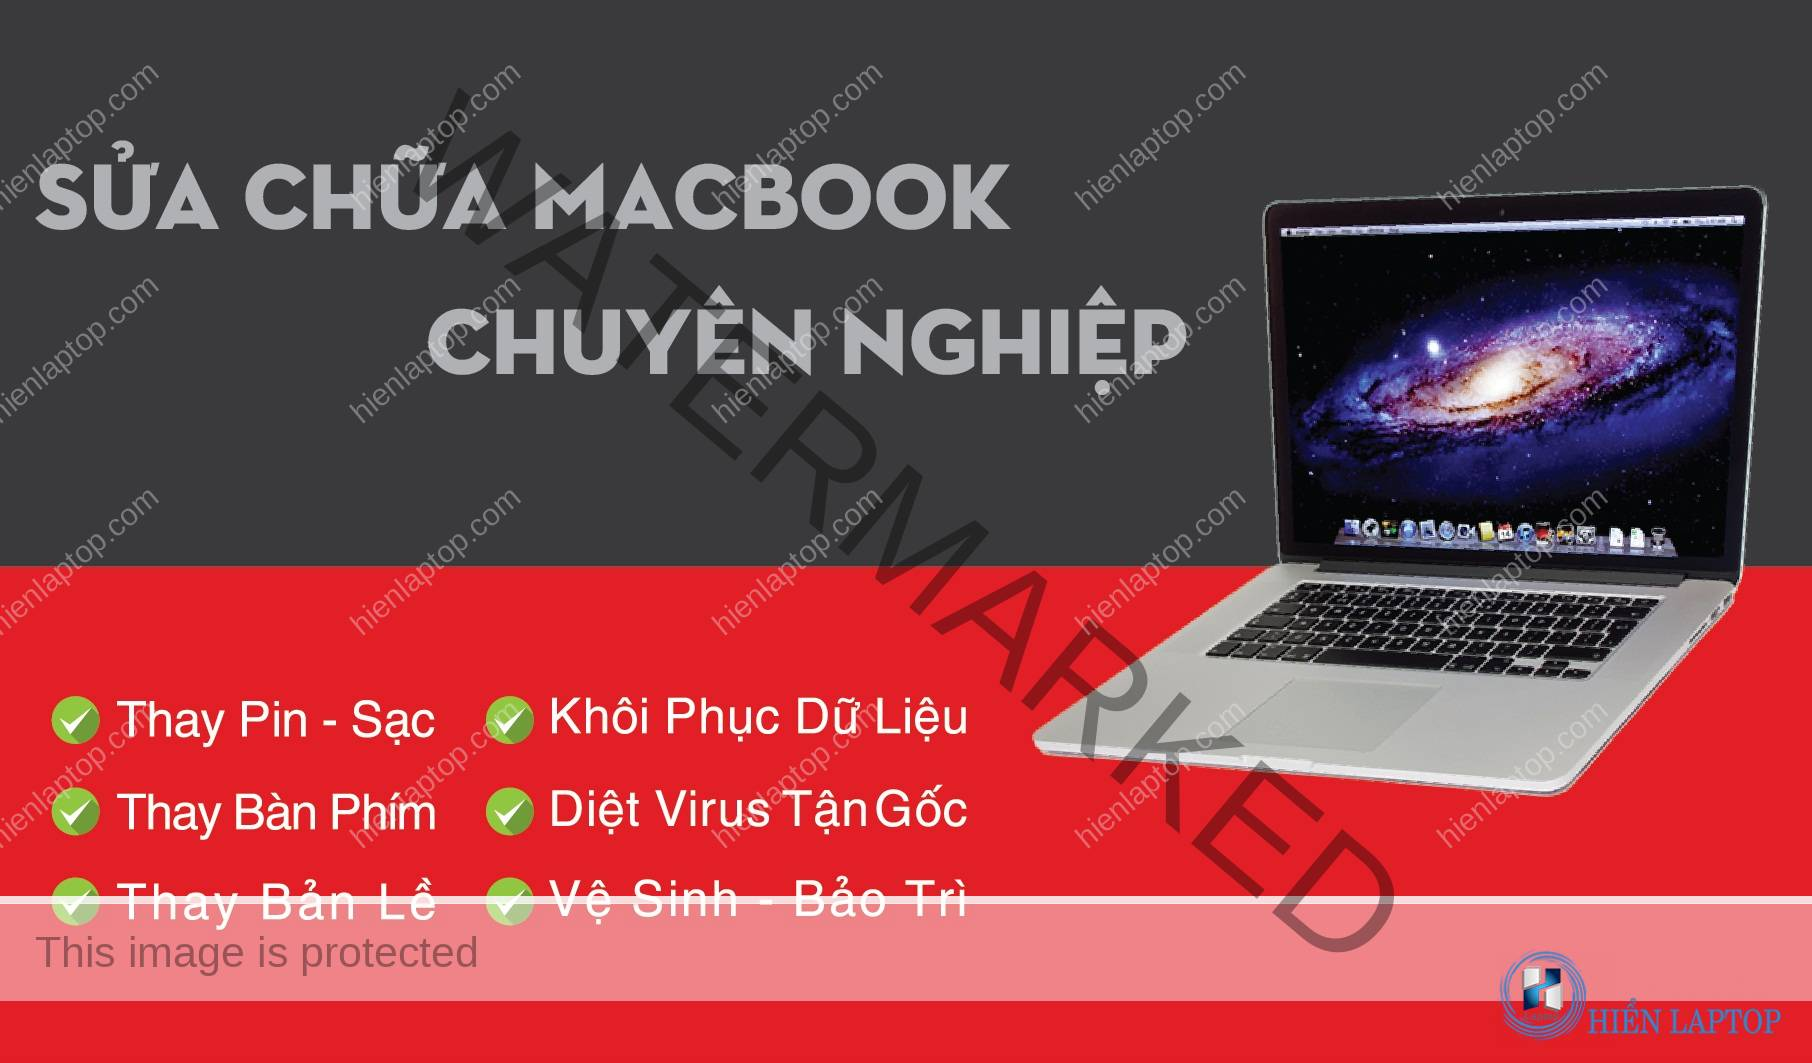 sua-man-hinh-laptop-macbook-1